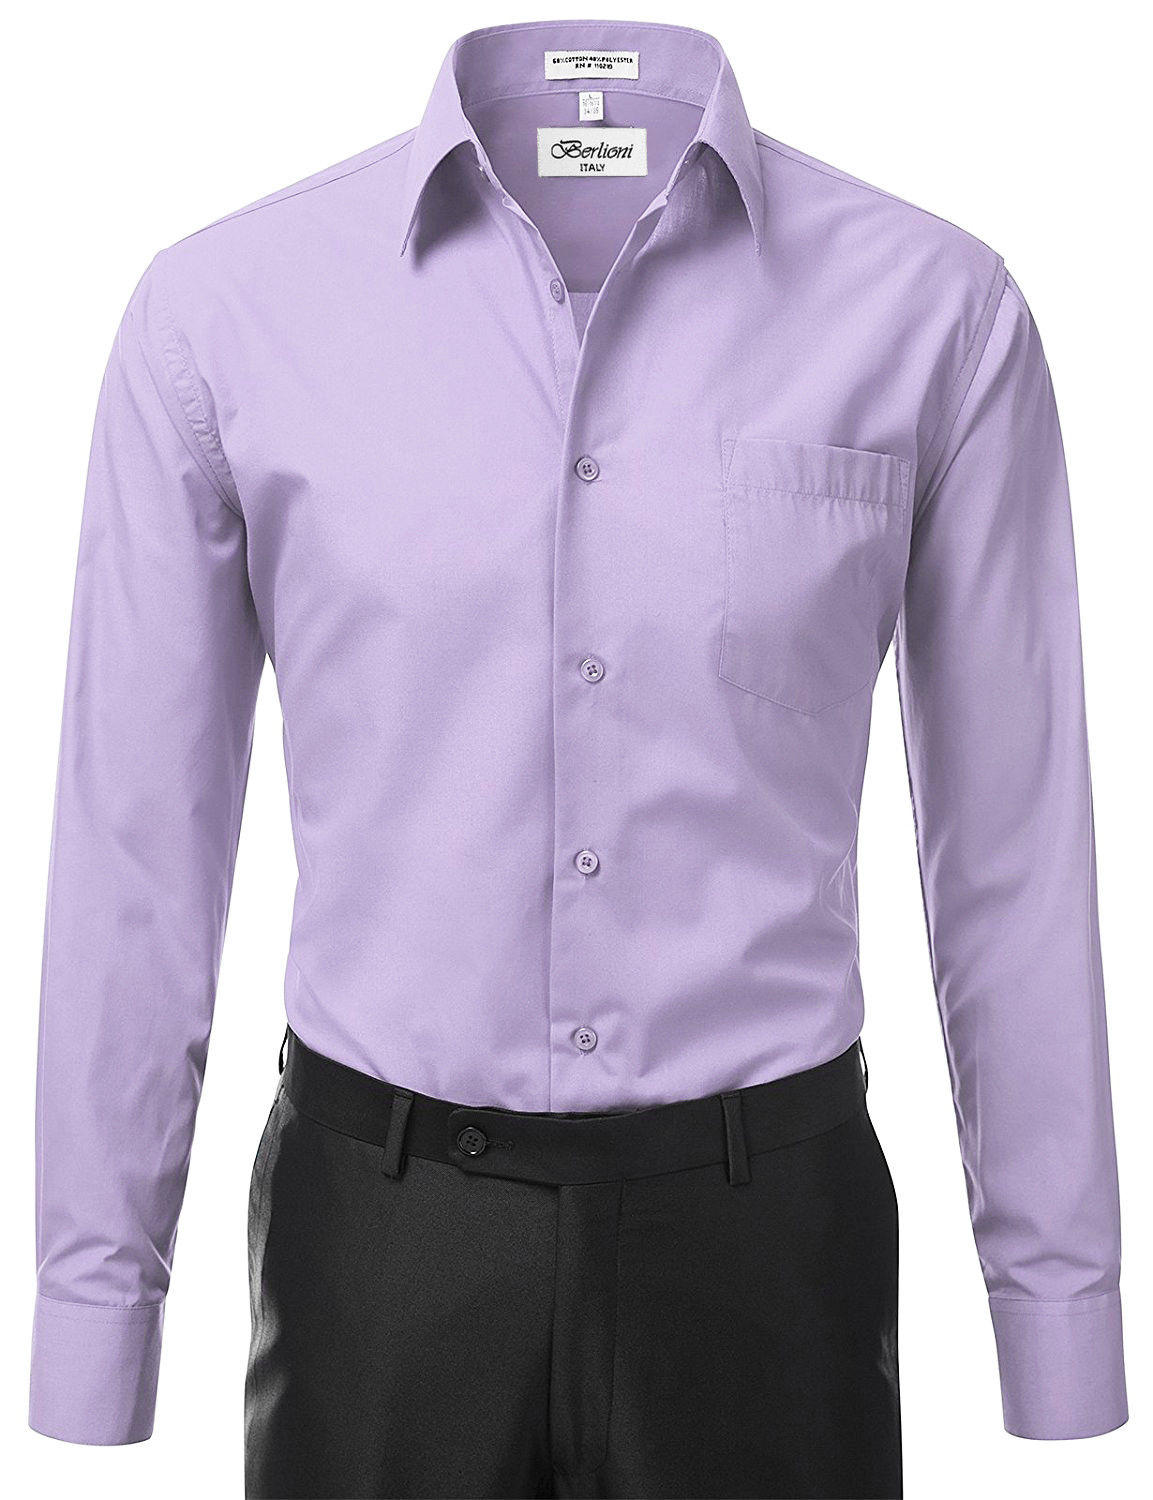 Berlioni-Italy-Men-039-s-Premium-Classic-French-Convertible-Cuff-Solid-Dress-Shirt thumbnail 60